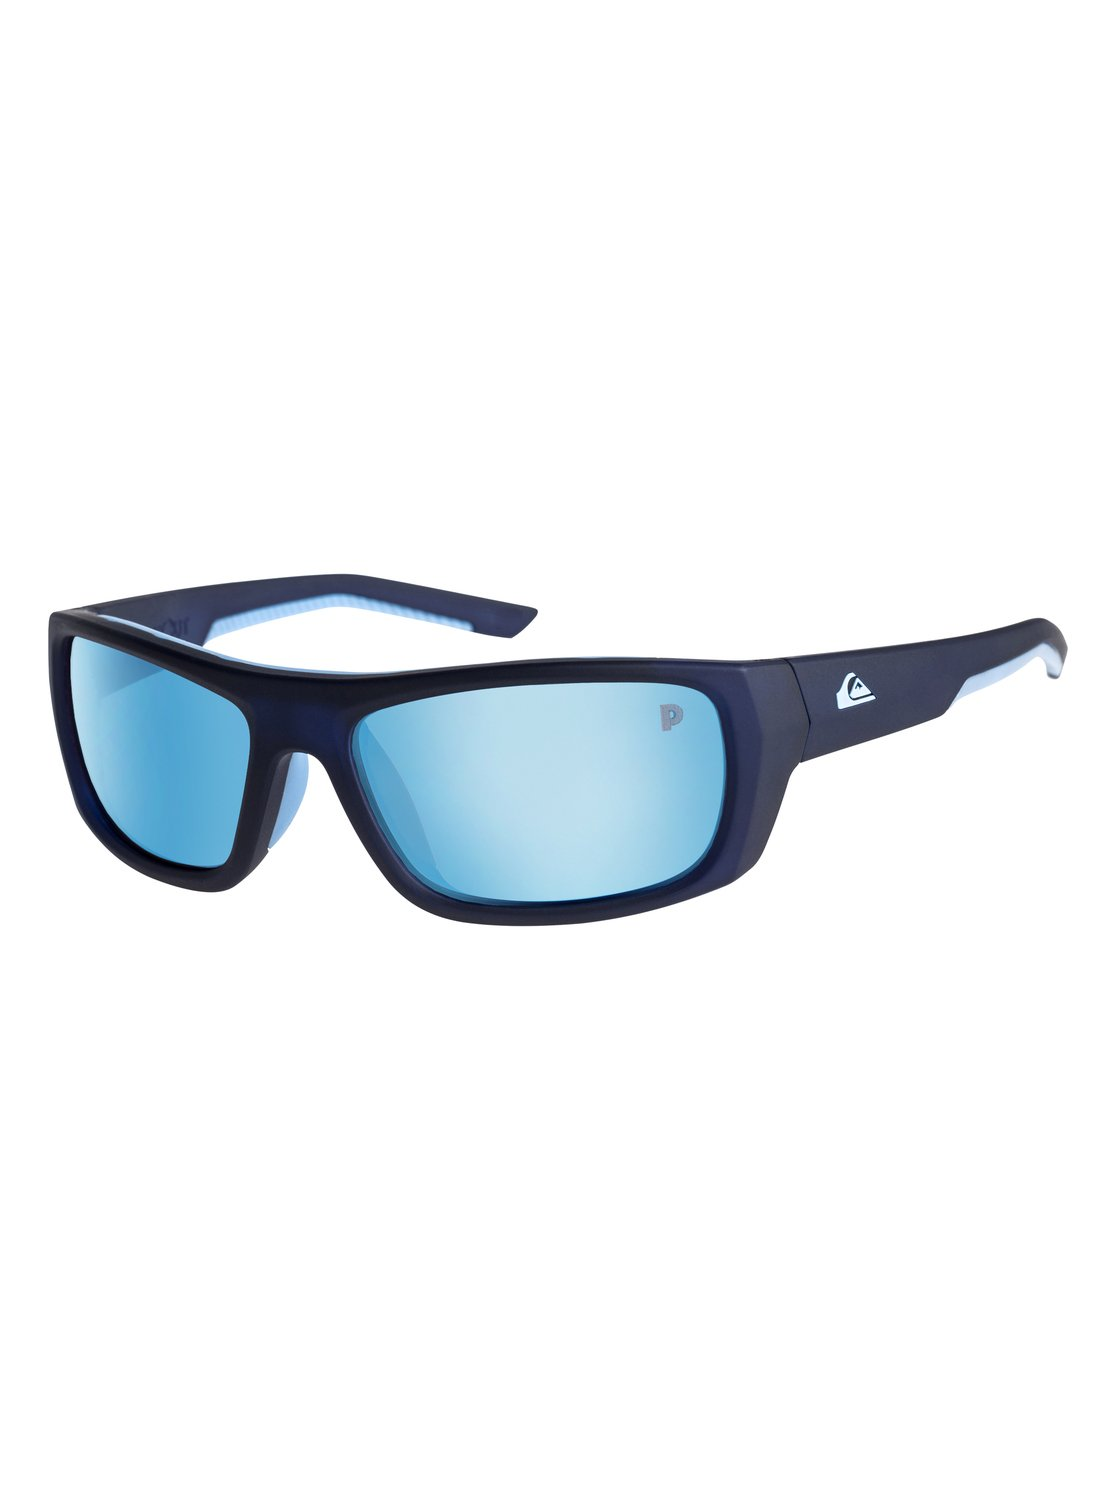 Knockout Polarized - Sunglasses